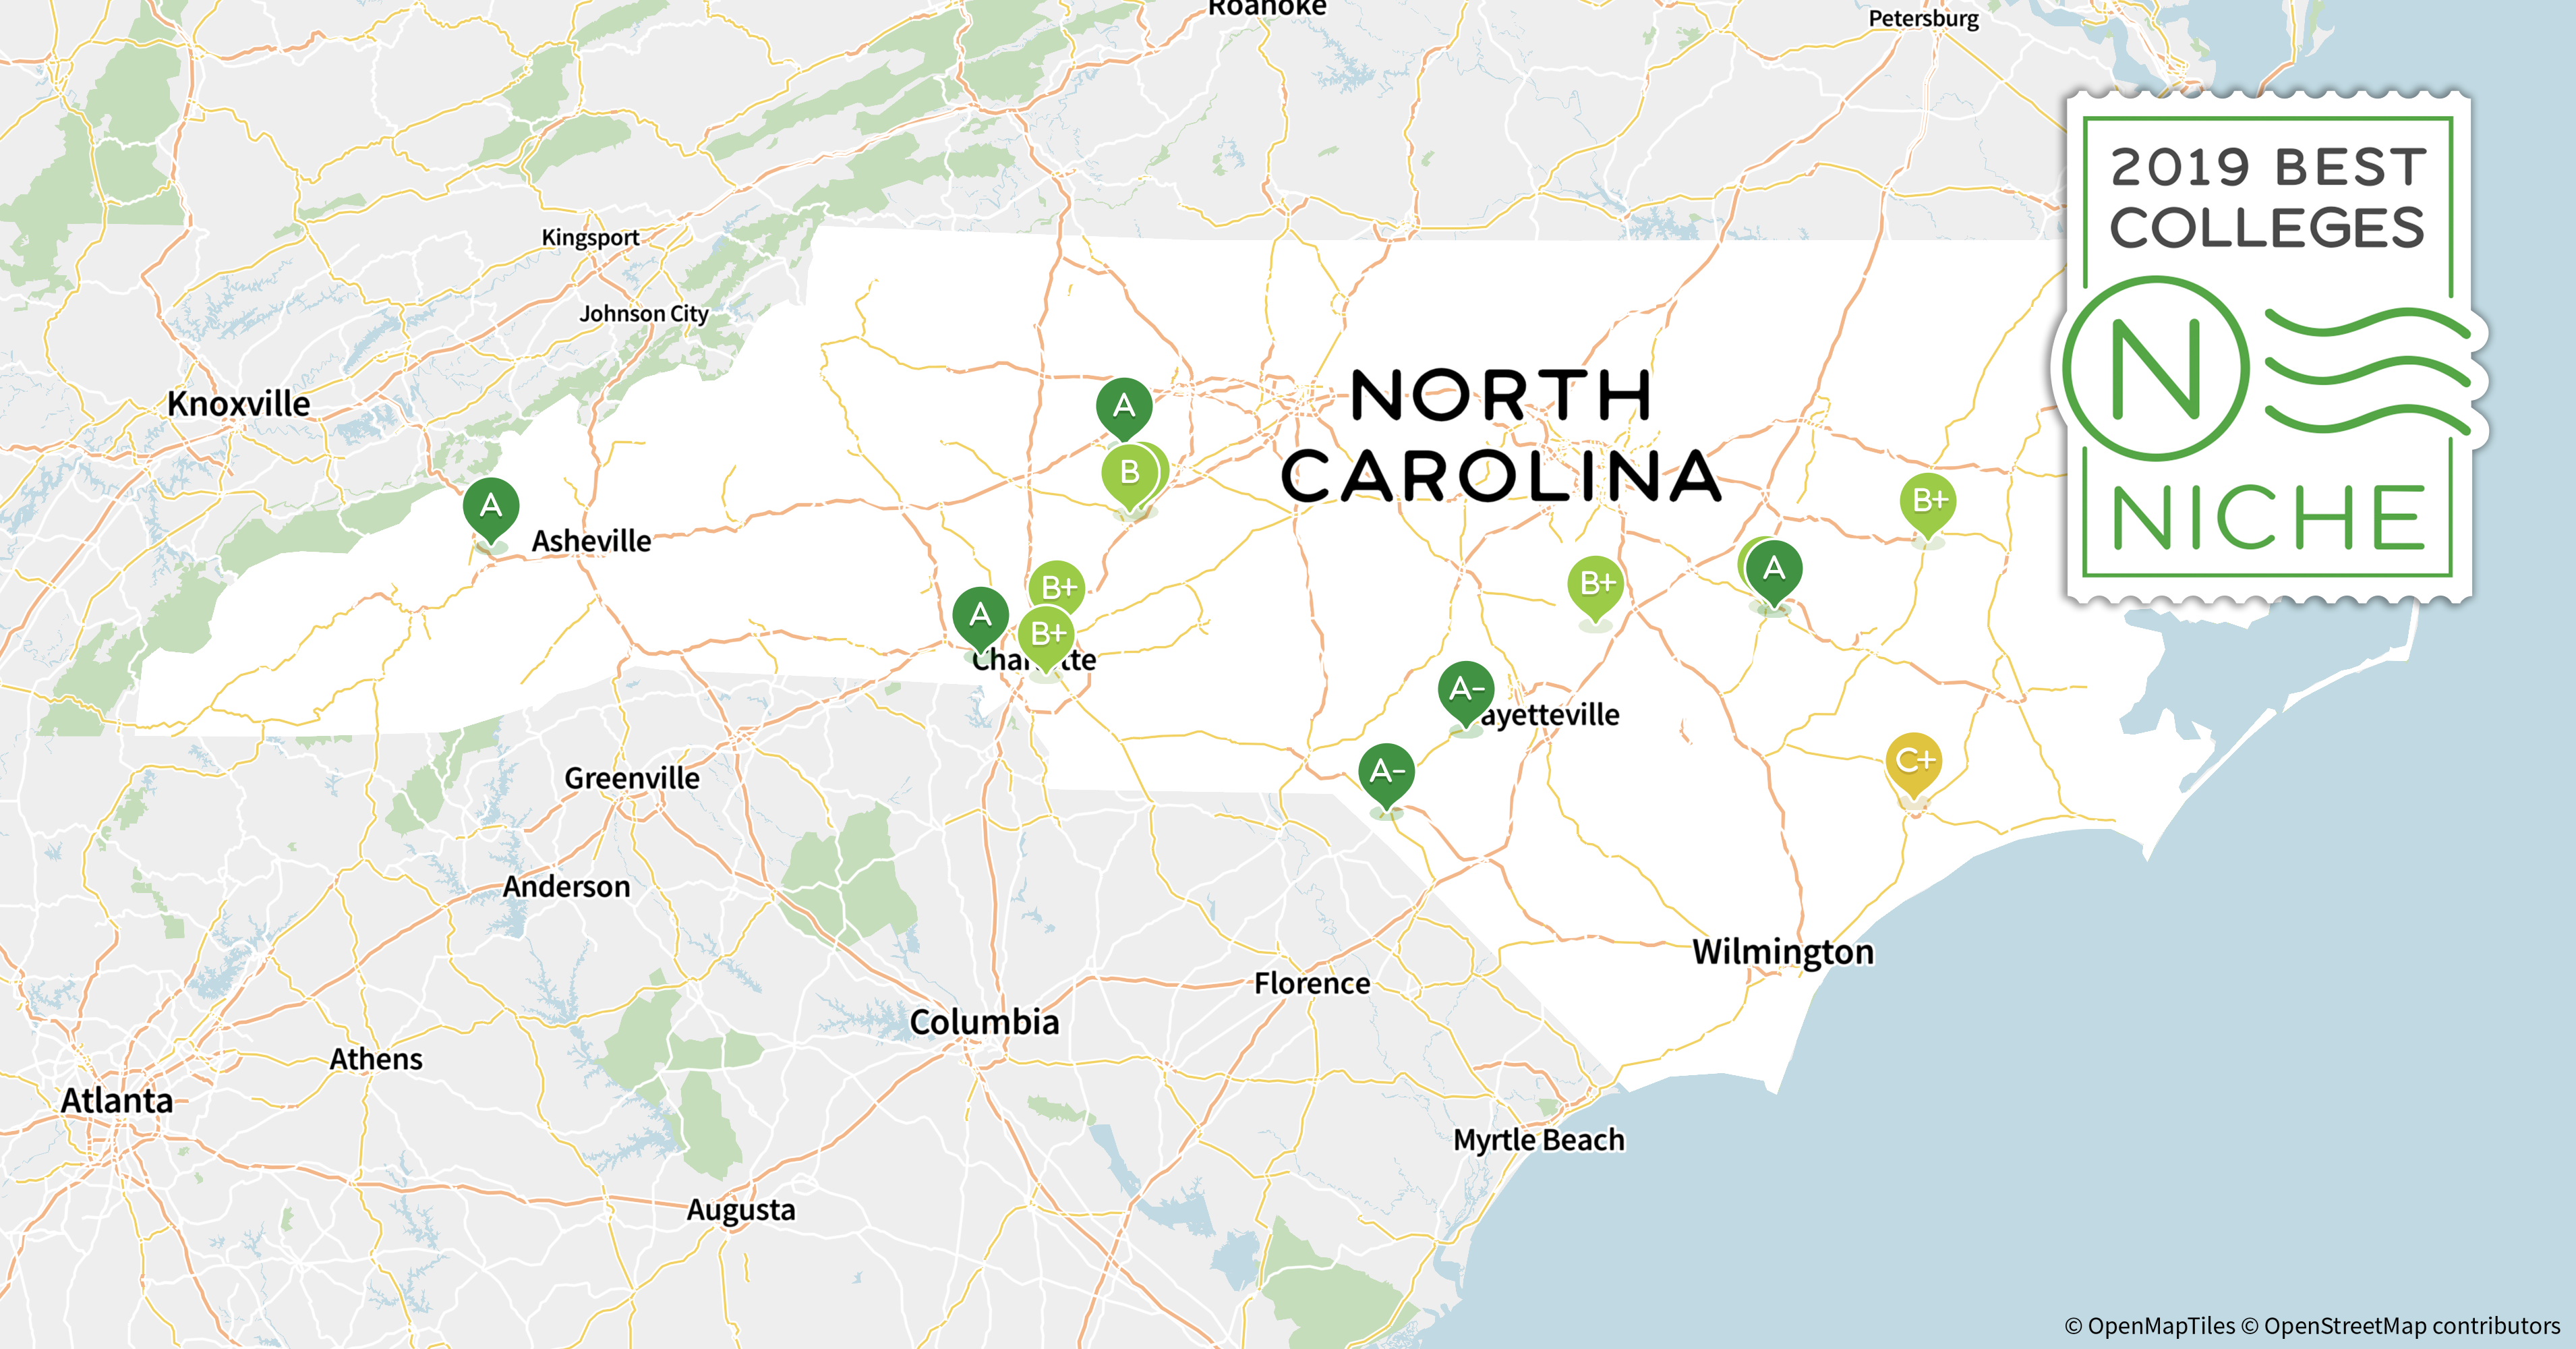 Salem College Campus Map.2019 Best Colleges In North Carolina Niche